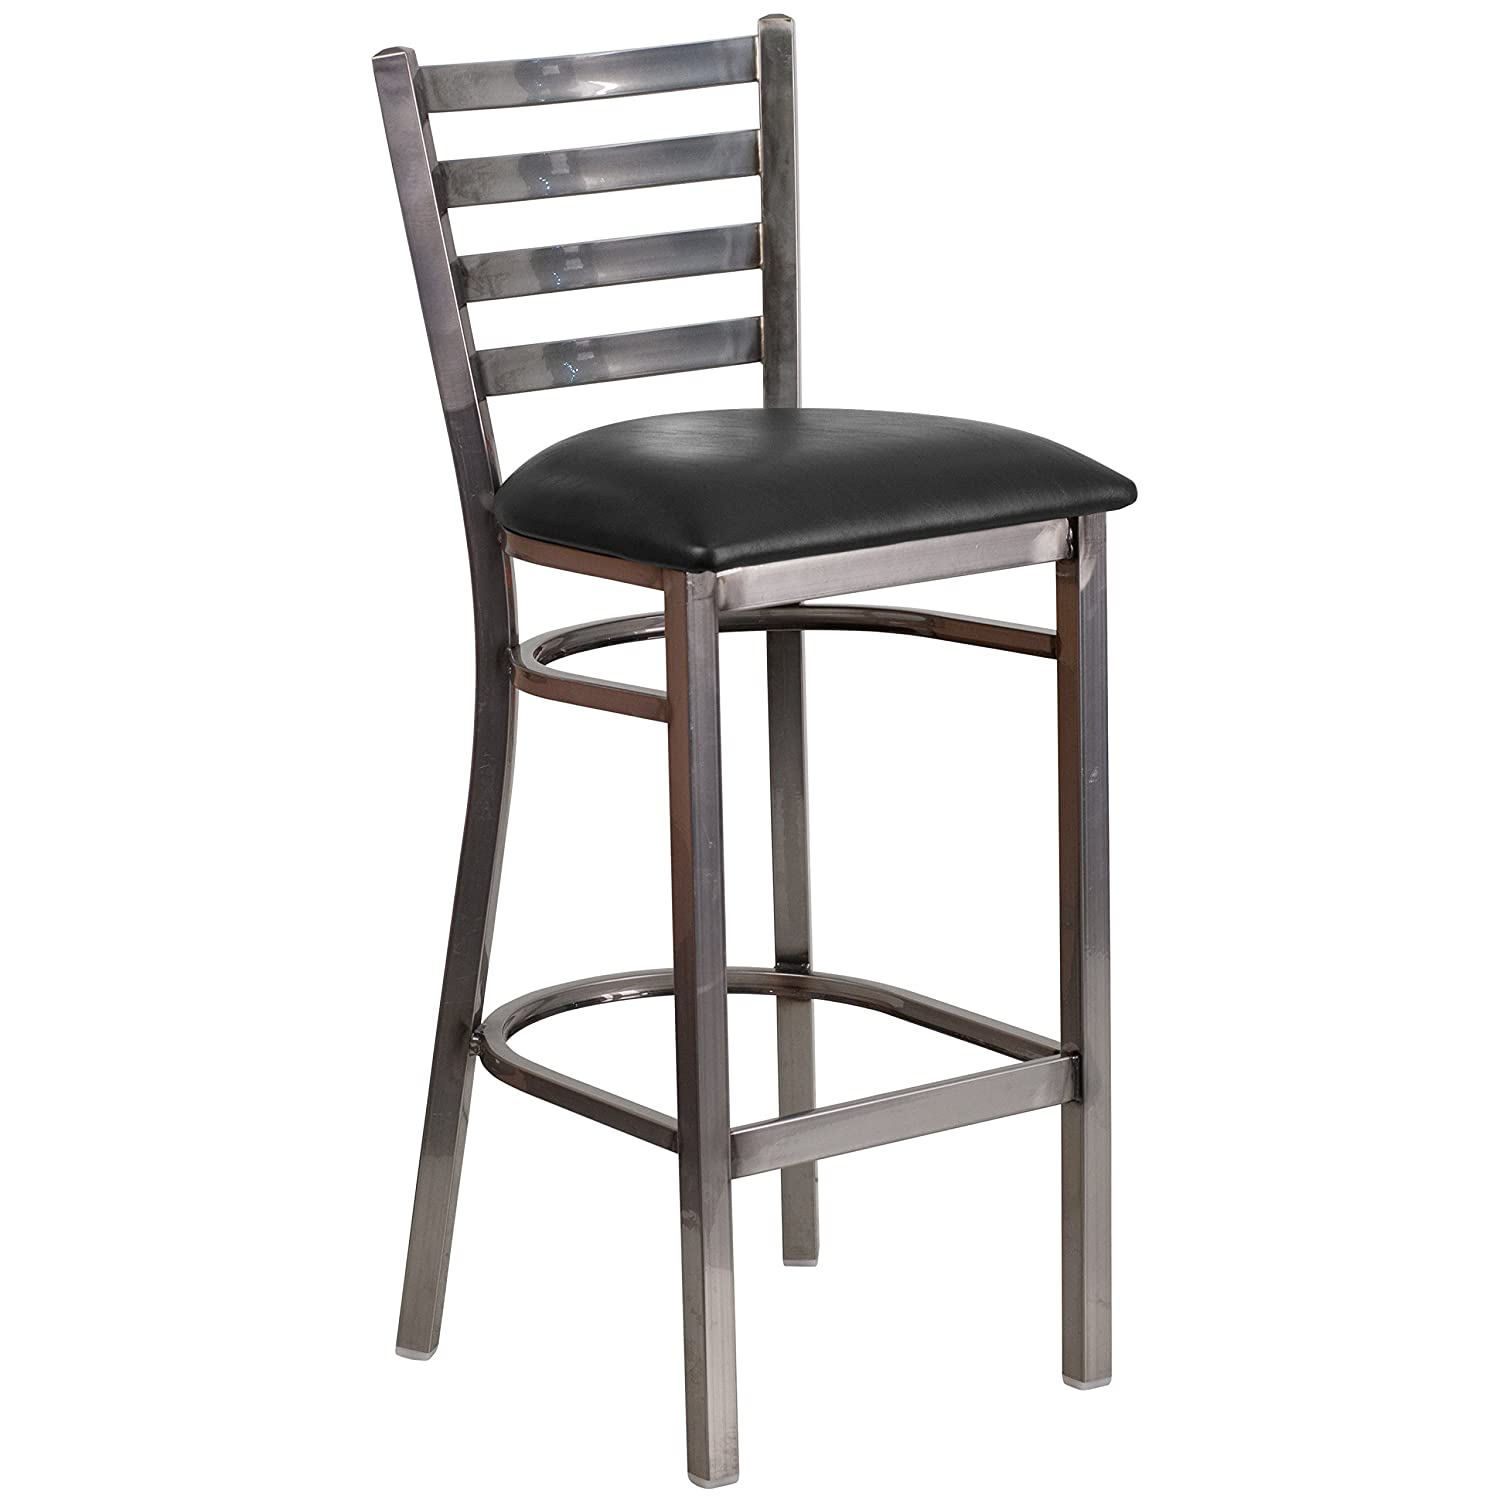 Amazon.com Flash Furniture HERCULES Series Clear Coated Ladder Back Metal Restaurant Barstool - Black Vinyl Seat Kitchen u0026 Dining  sc 1 st  Amazon.com & Amazon.com: Flash Furniture HERCULES Series Clear Coated Ladder ... islam-shia.org